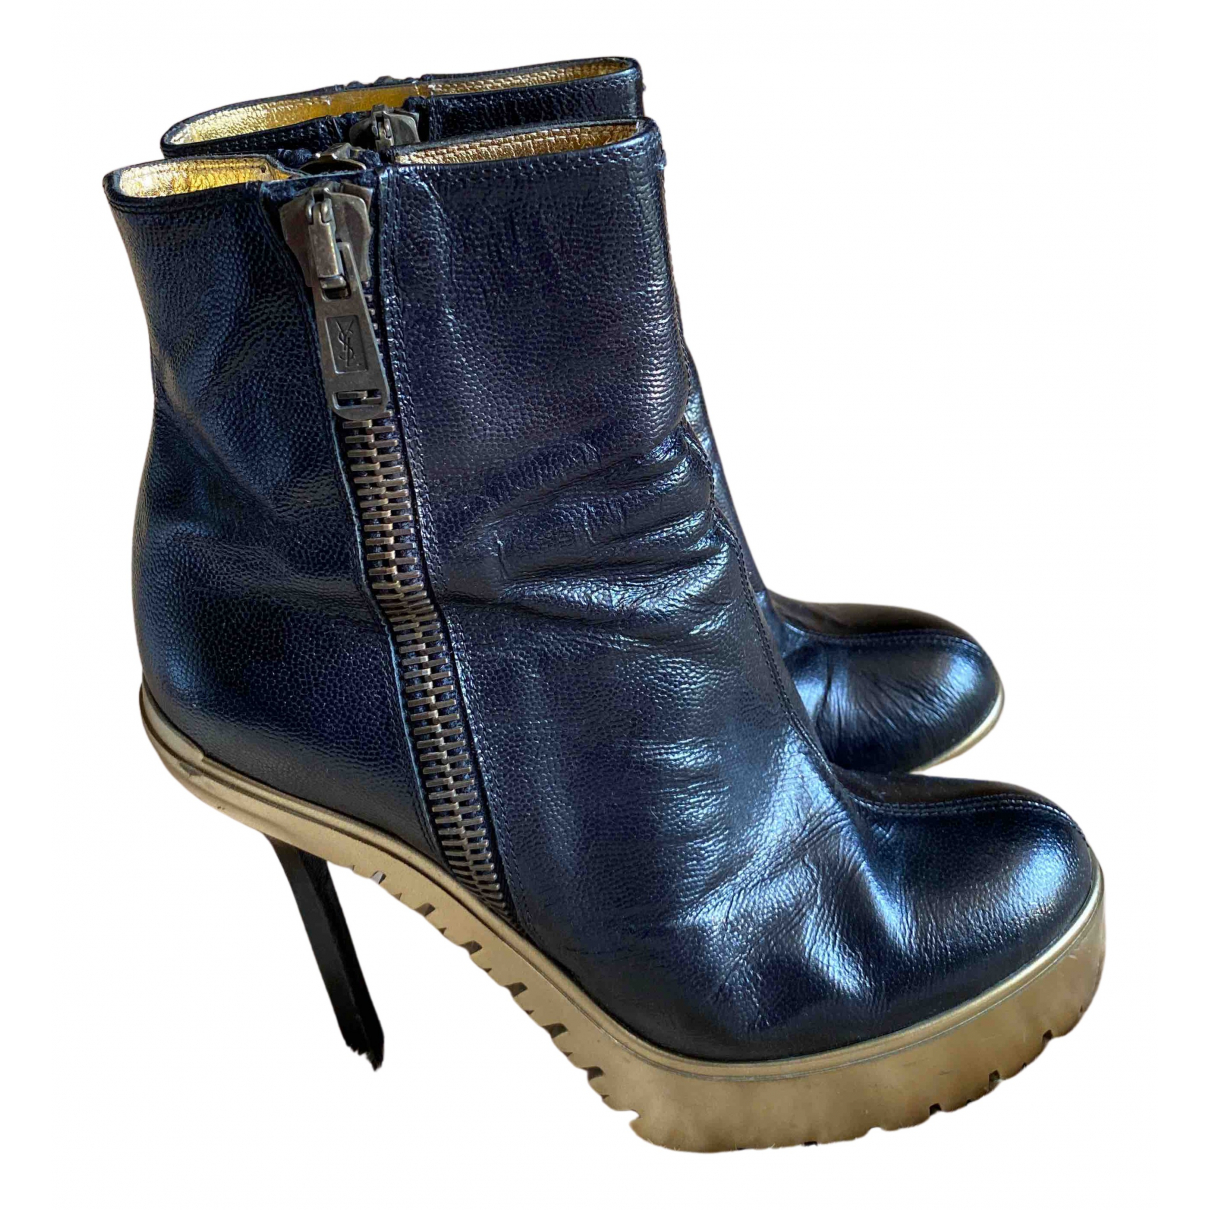 Yves Saint Laurent N Black Leather Ankle boots for Women 39 EU